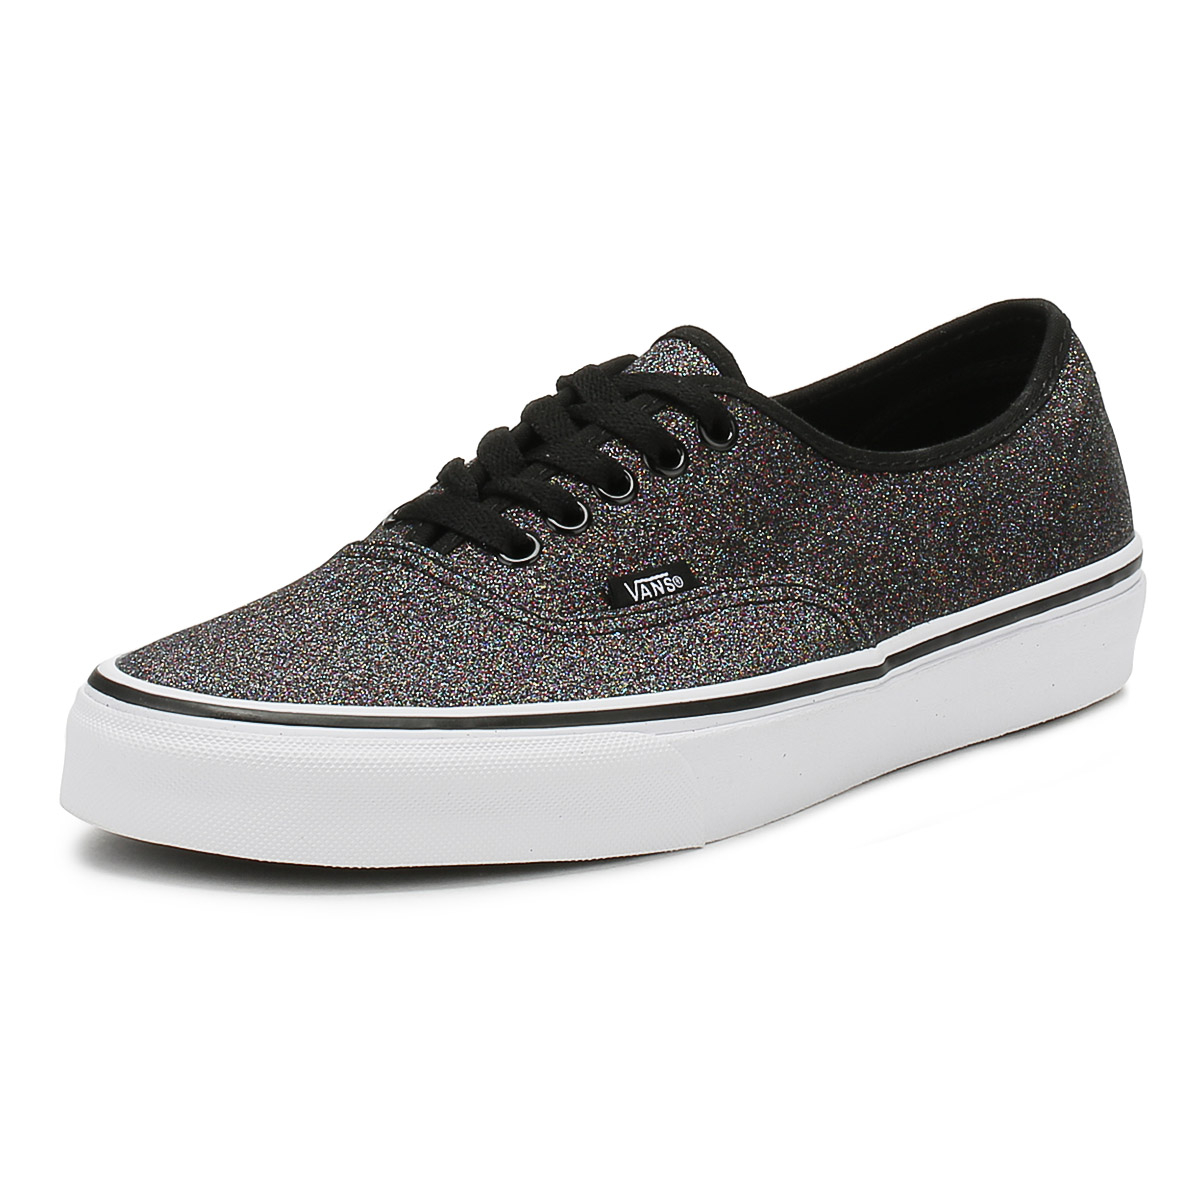 Details about Vans Womens Authentic Trainers Glitter Rainbow Black Lace Up  Ladies Skate Shoes 8ddbd3018